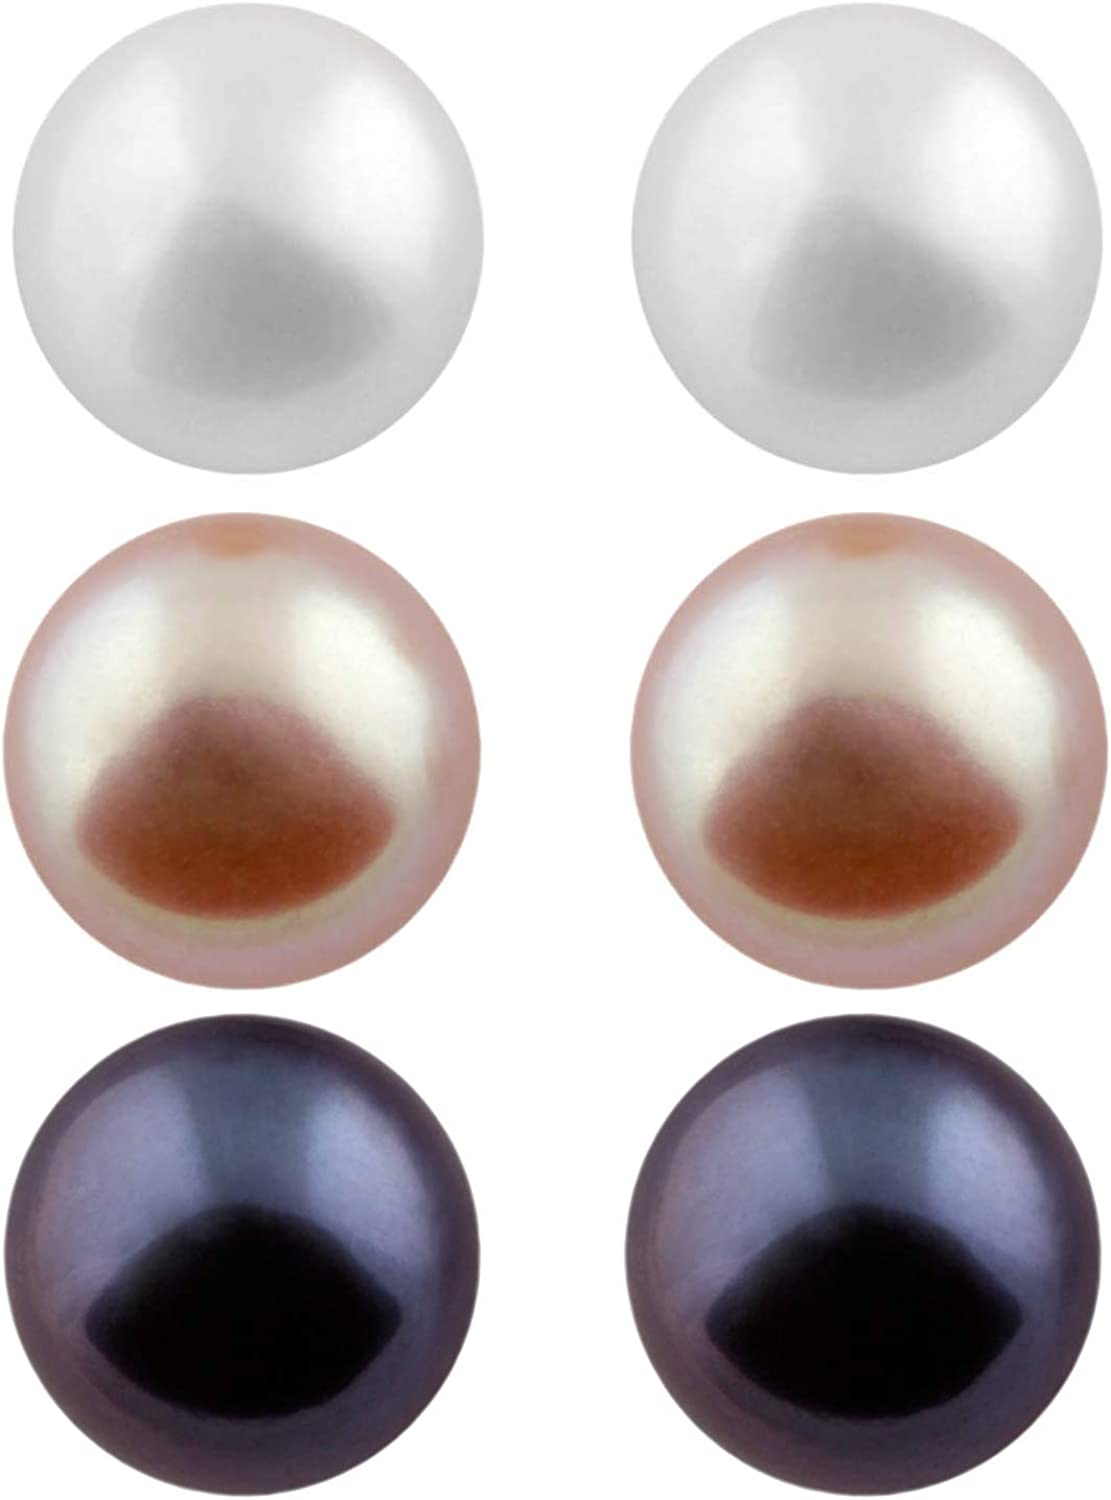 Natural Purple Pearl Necklace 2.5-3mm Freshwater Near Round Pearl Strand Cultured Pearl Beads for Earrings Bracelet ETFNS001-Pu